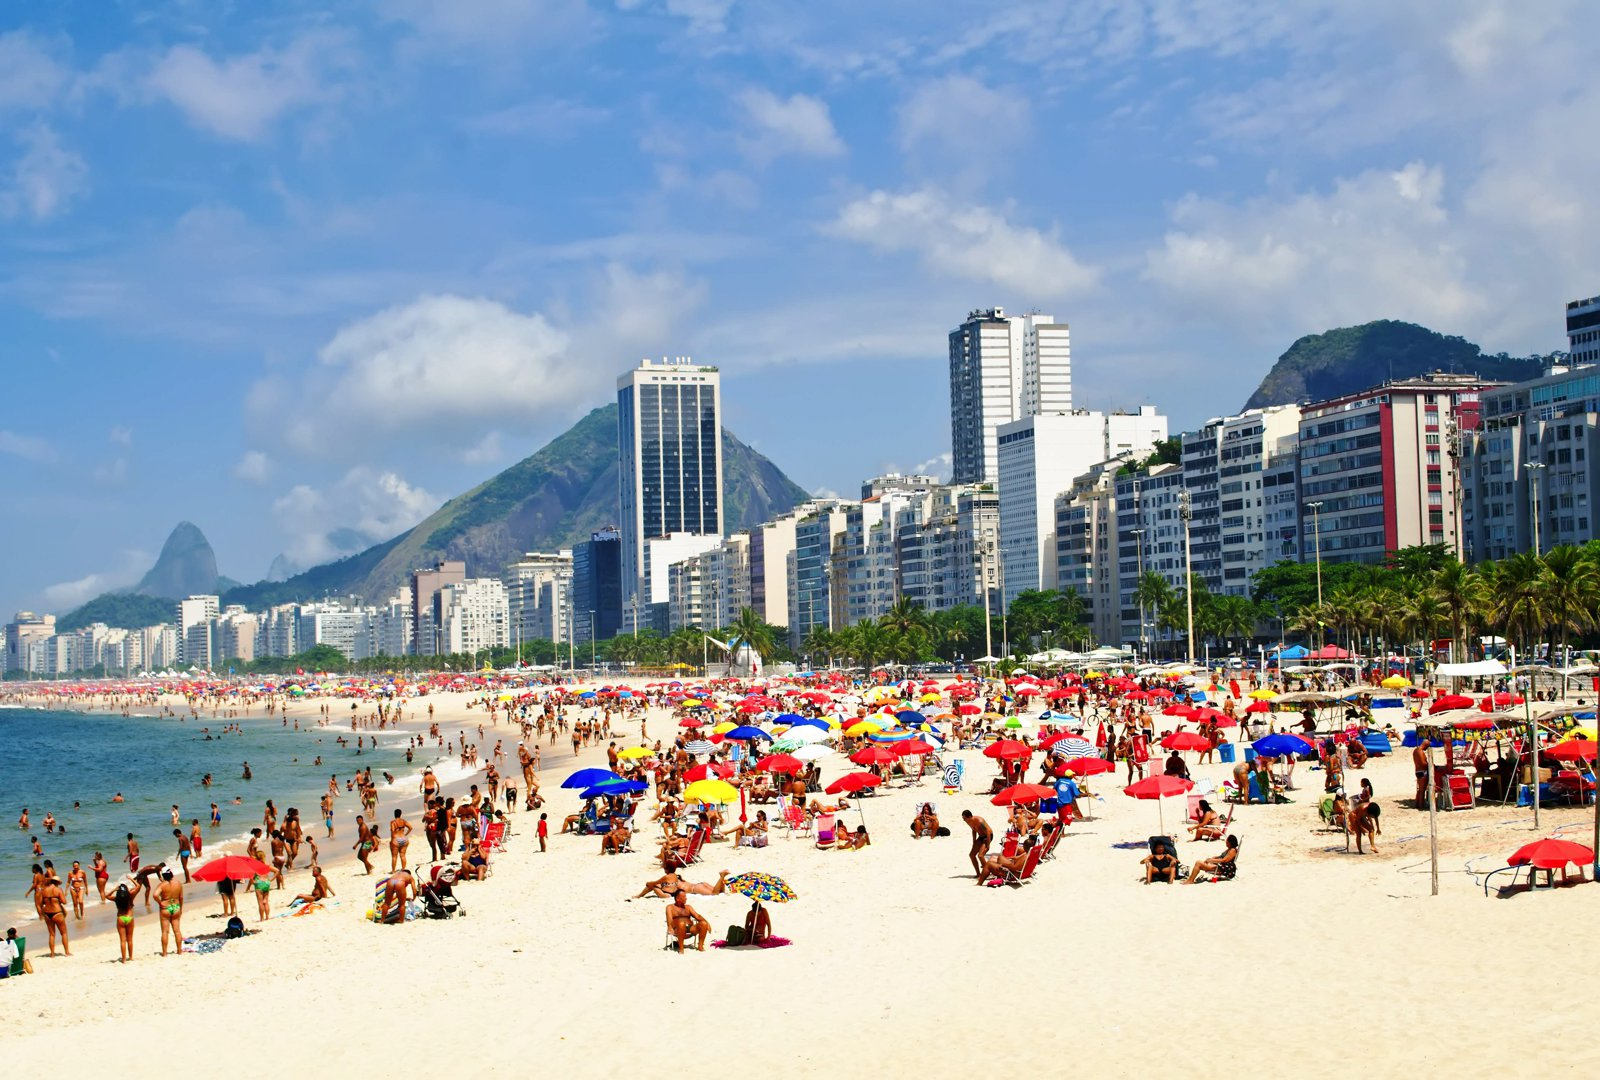 10 Fantastic Sights You Have To See In Rio de Janeiro, Brazil (11)